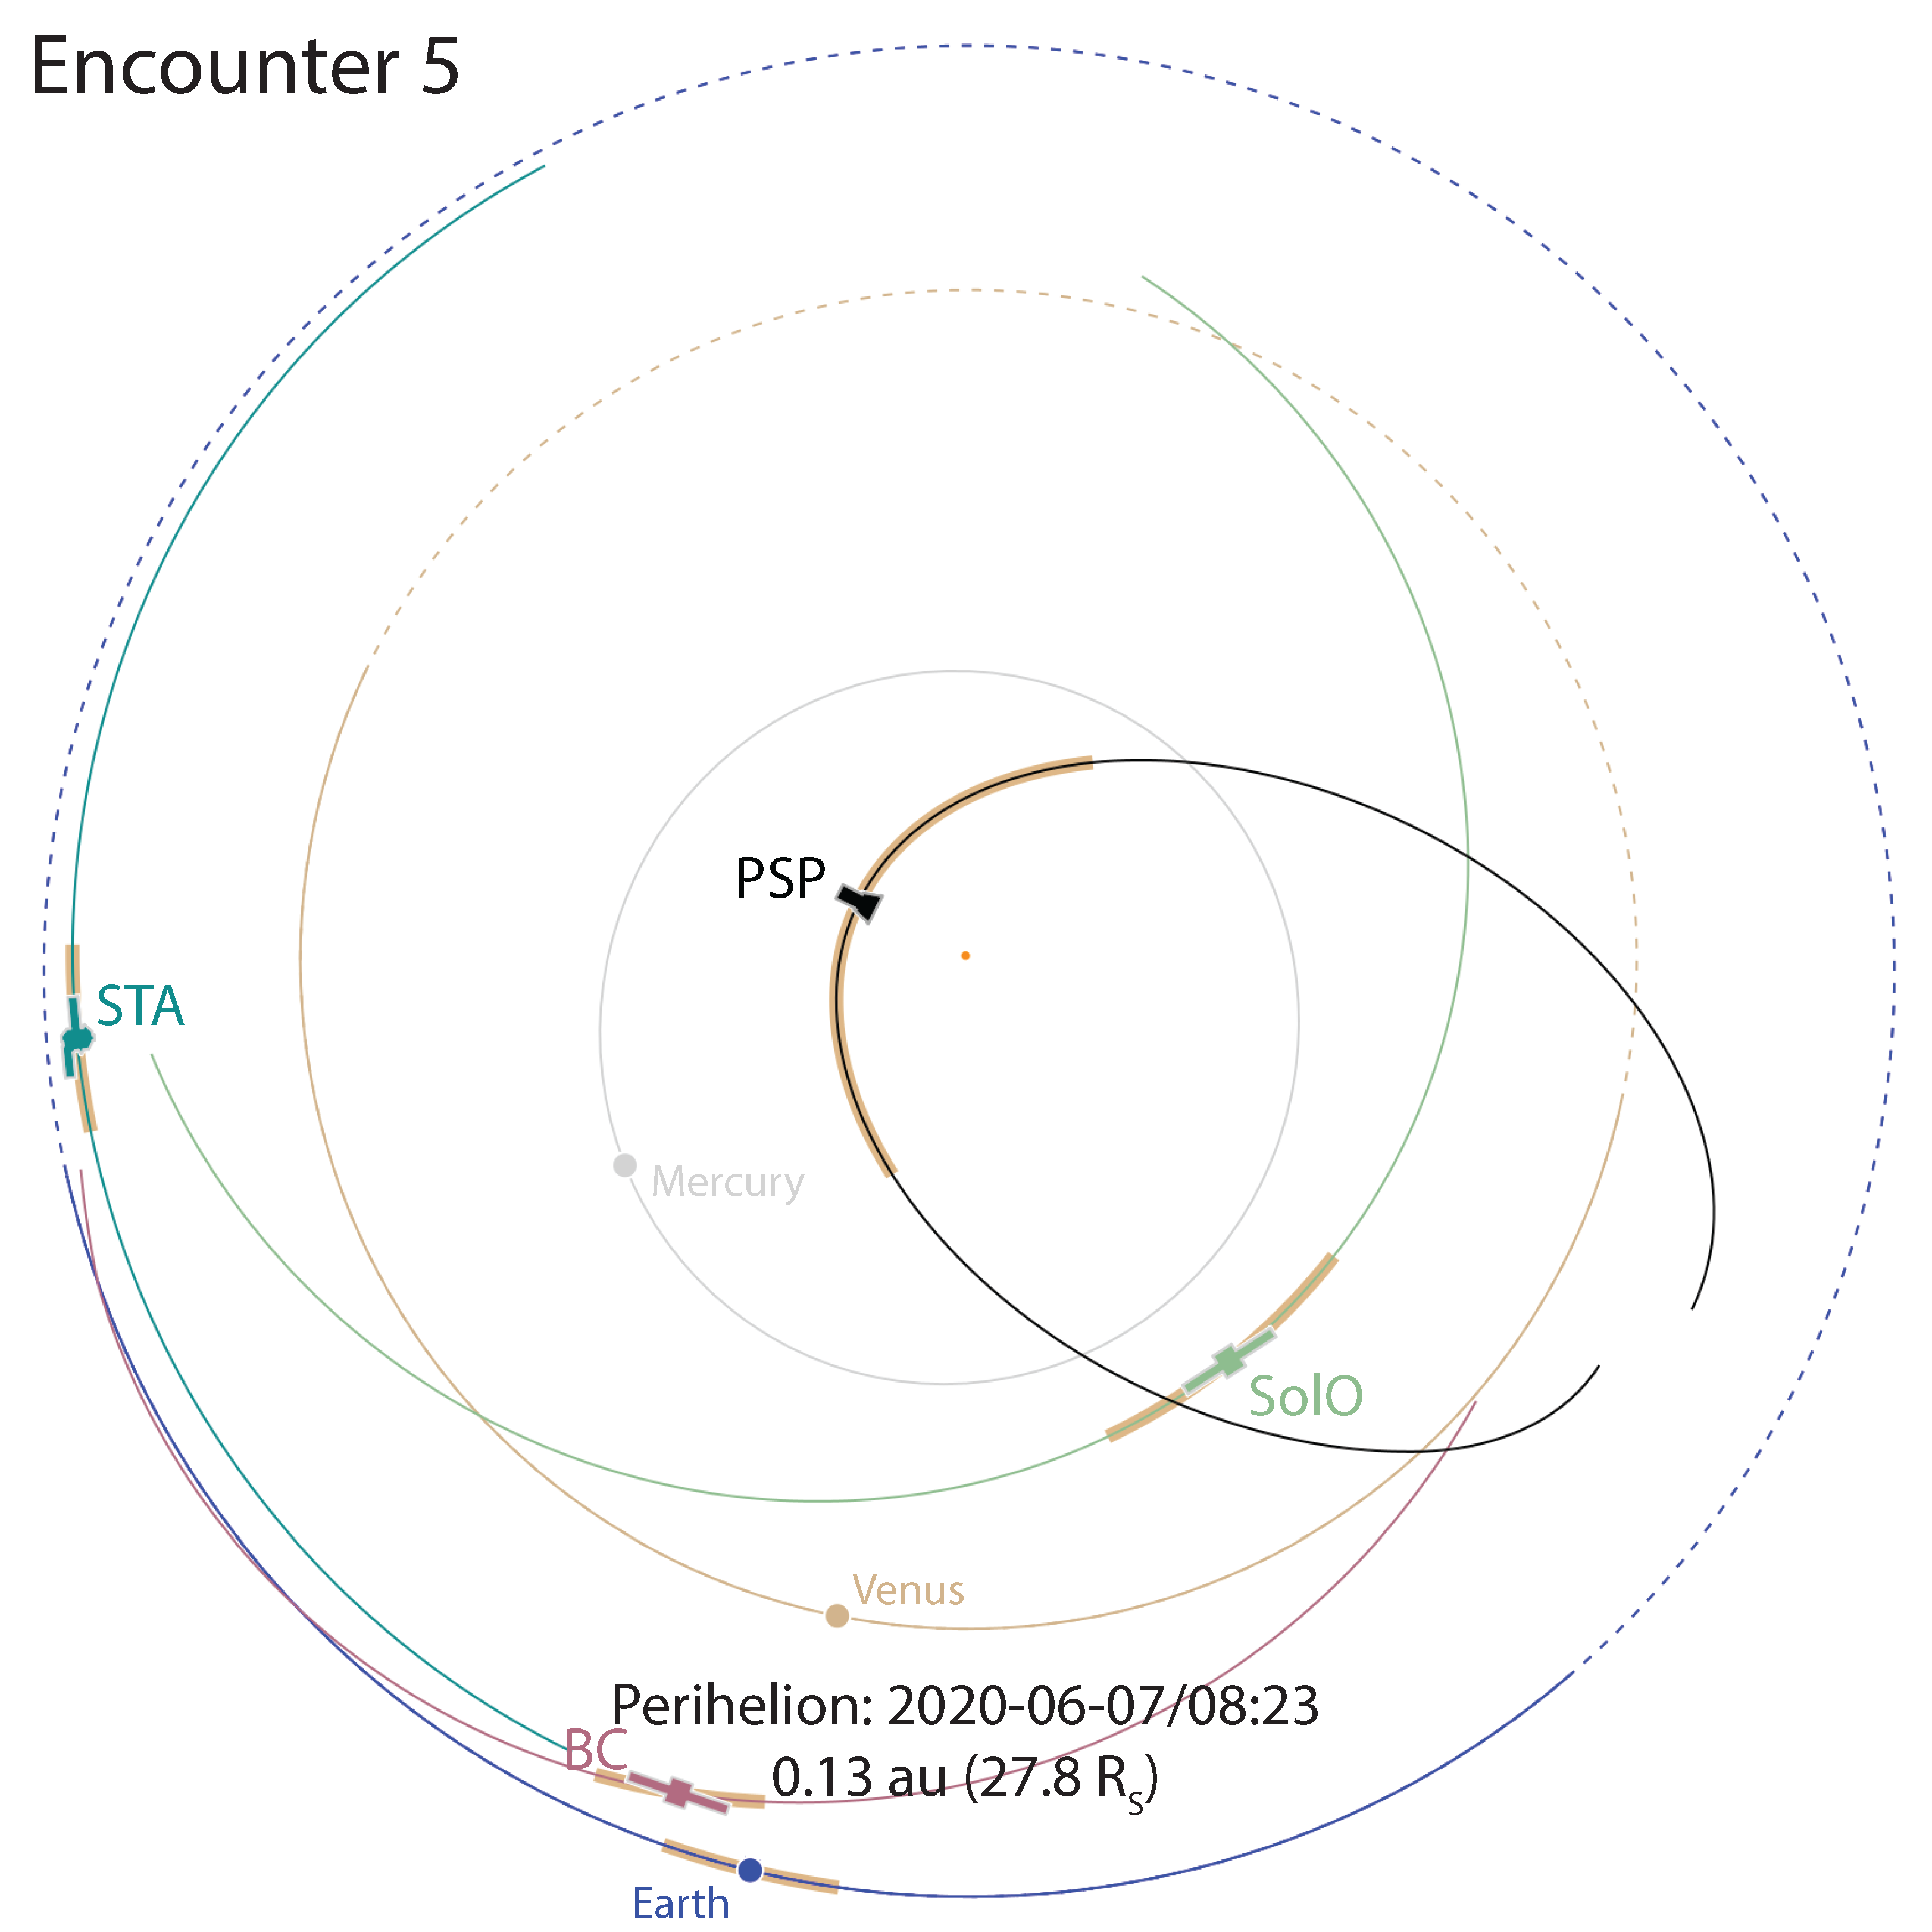 PSP Encounter Orbit 5